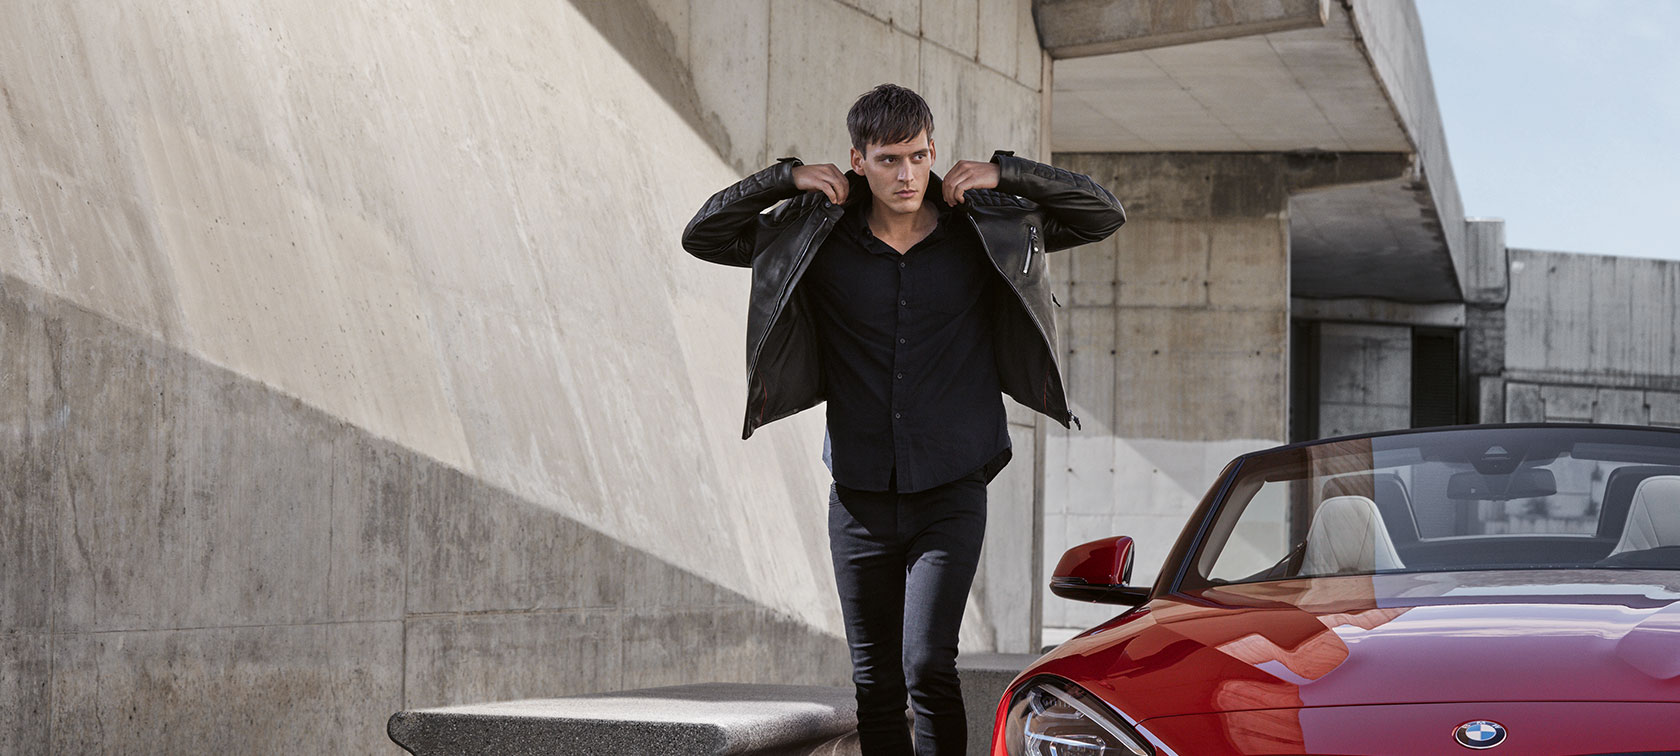 In the picture, a young man presents products from the BMW Collection as he walks towards the viewer.